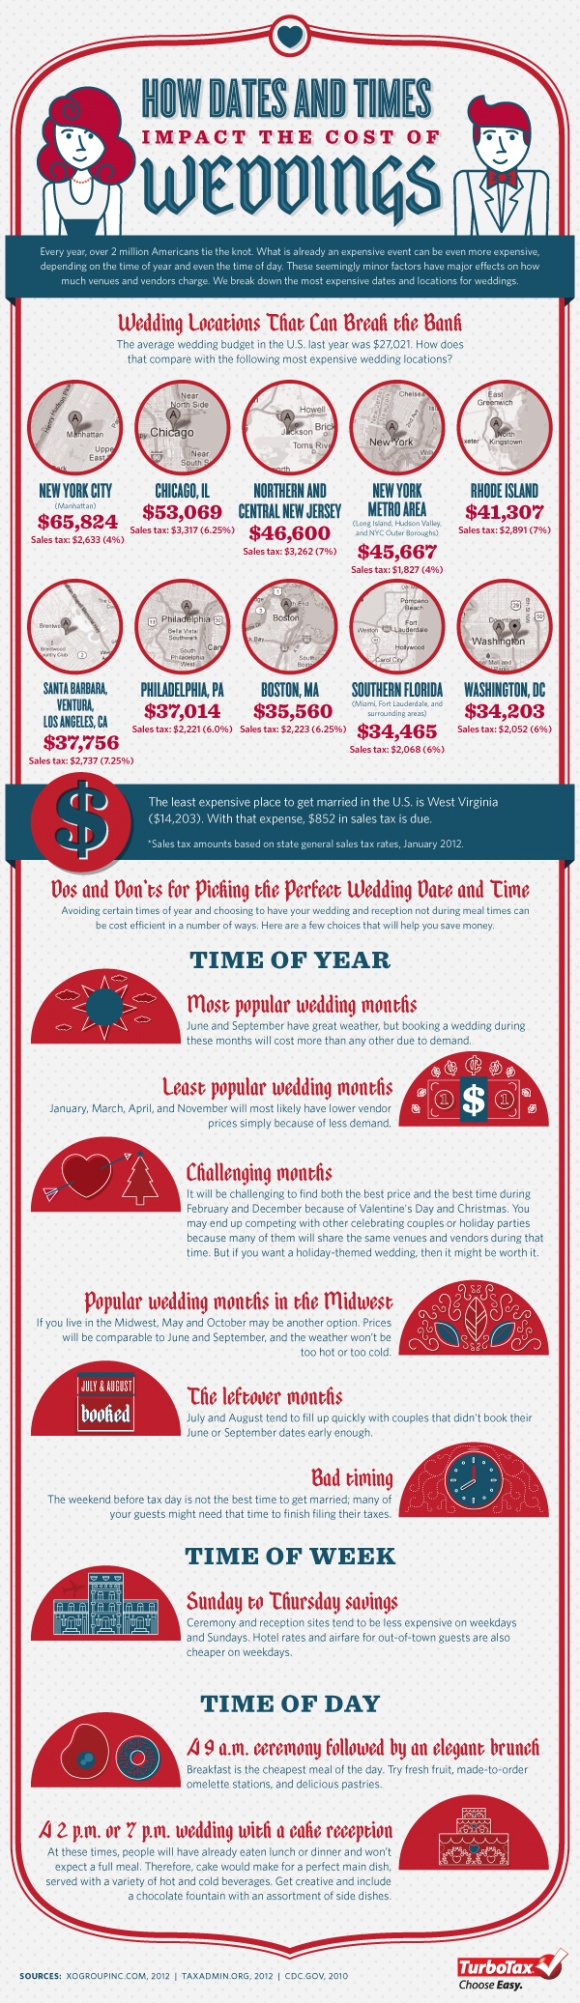 wedding-planning-tips-2-01212015-ky